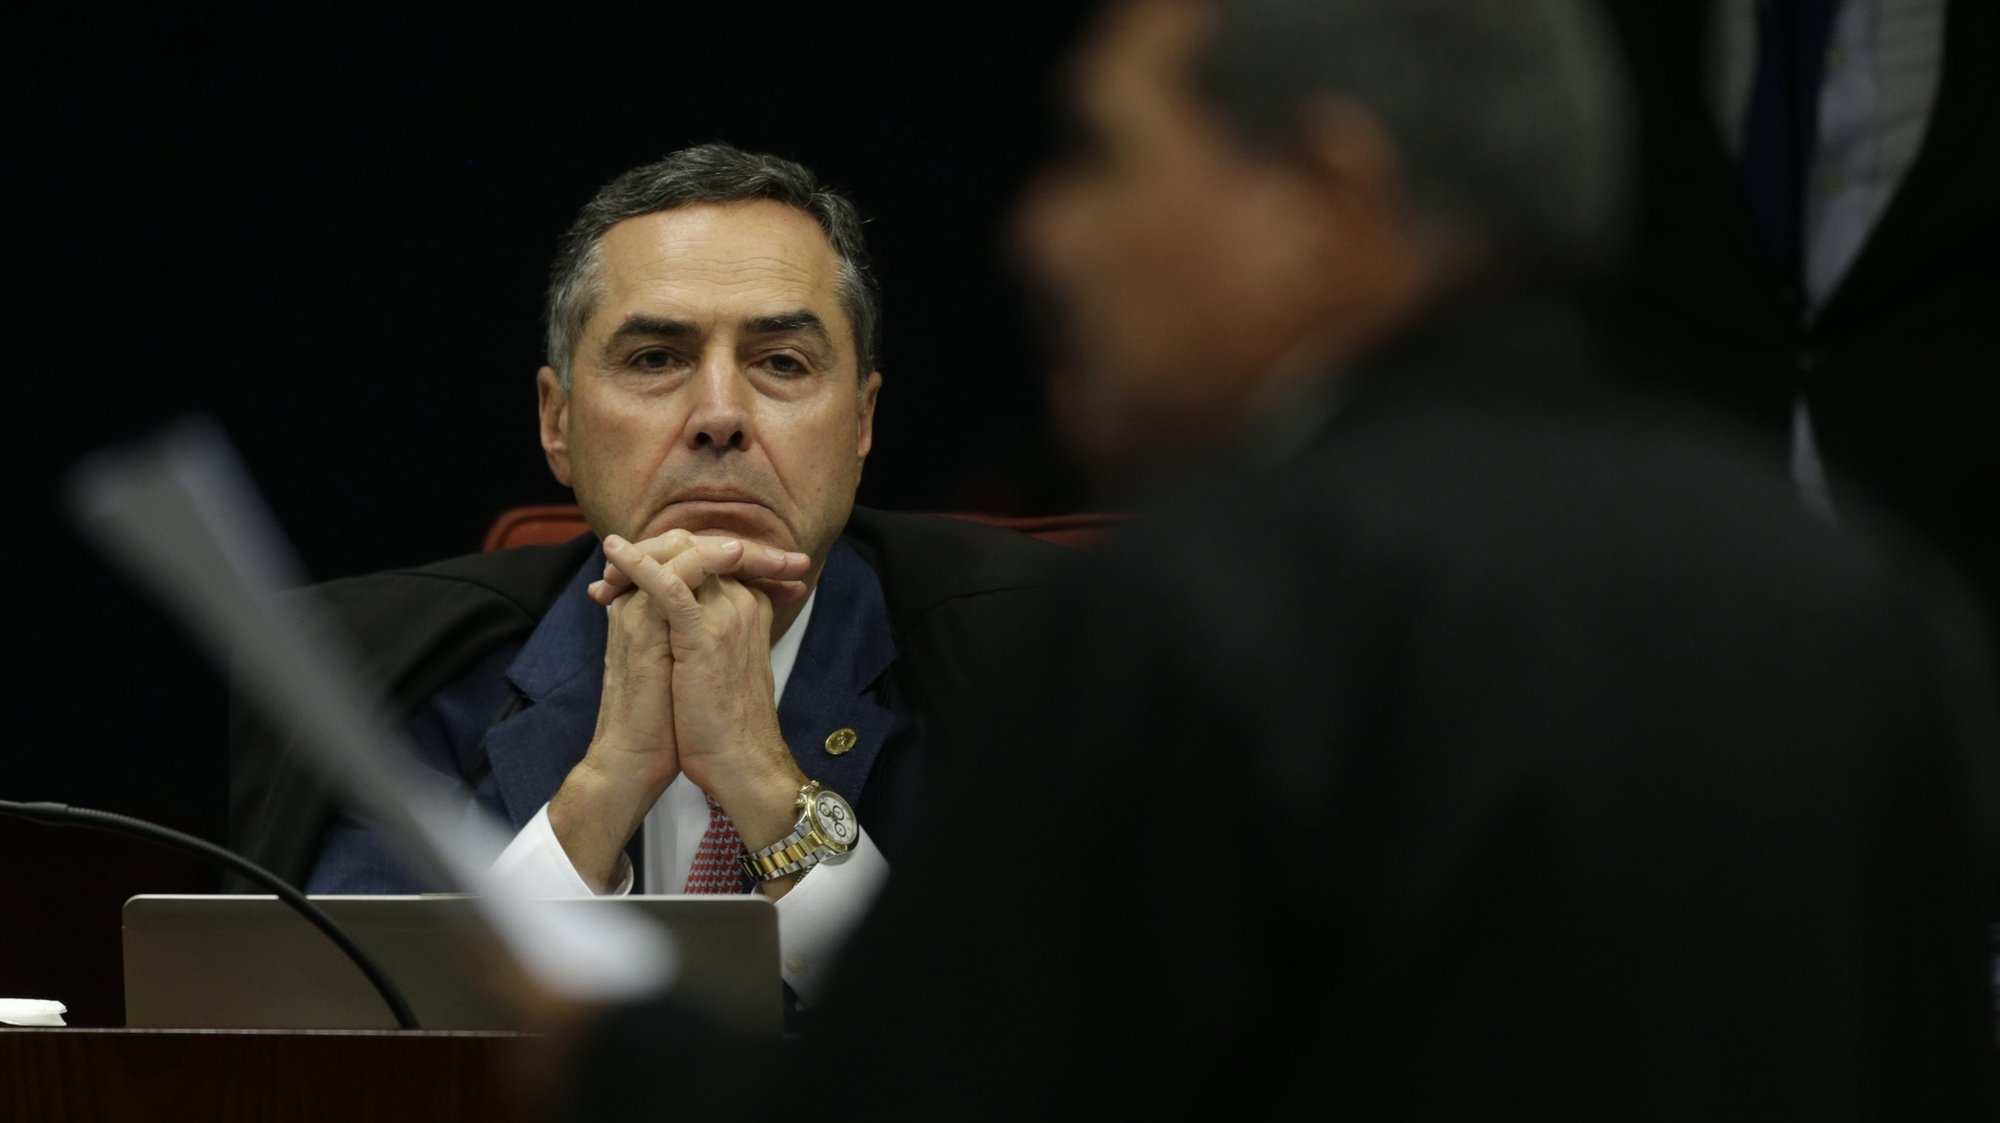 epa06585527 Magistrate Luis Roberto Barroso, member of the Supreme Federal Court, participates in a session of the Supreme Court in Brasilia, Brazil, 06 March 2018.  Brazil's Supreme Court lifted a ban, allowing access to bank transactions of Brazilian President Michel Temer. Authorities are investigating possible corruption involving Temer and the Democratic Movement party.  EPA/Joedson Alves